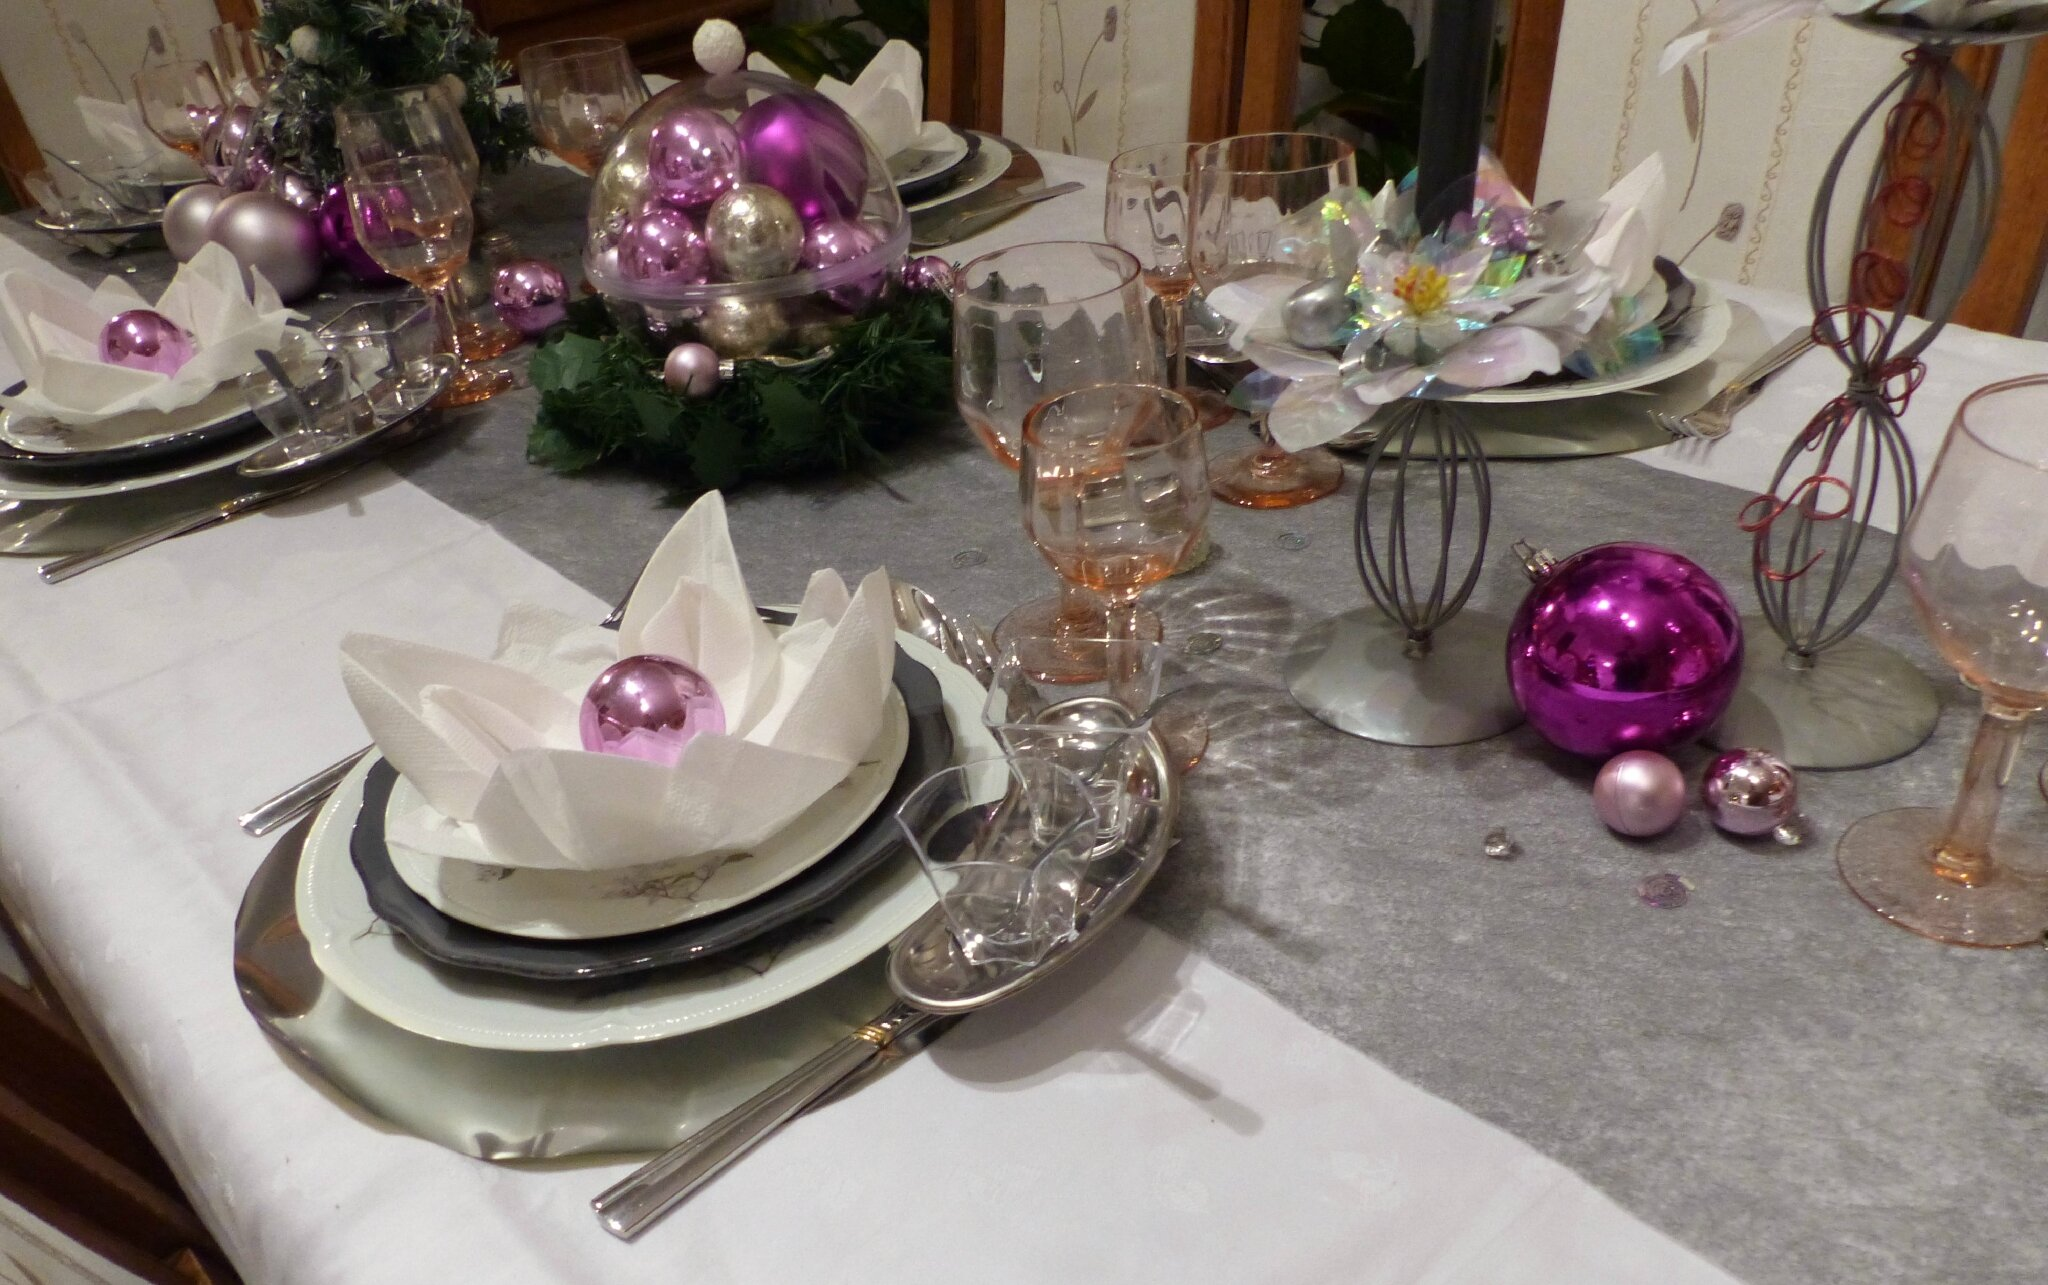 Table de no l rose et gris argent cuill re gourmande for Table de noel argent et blanc